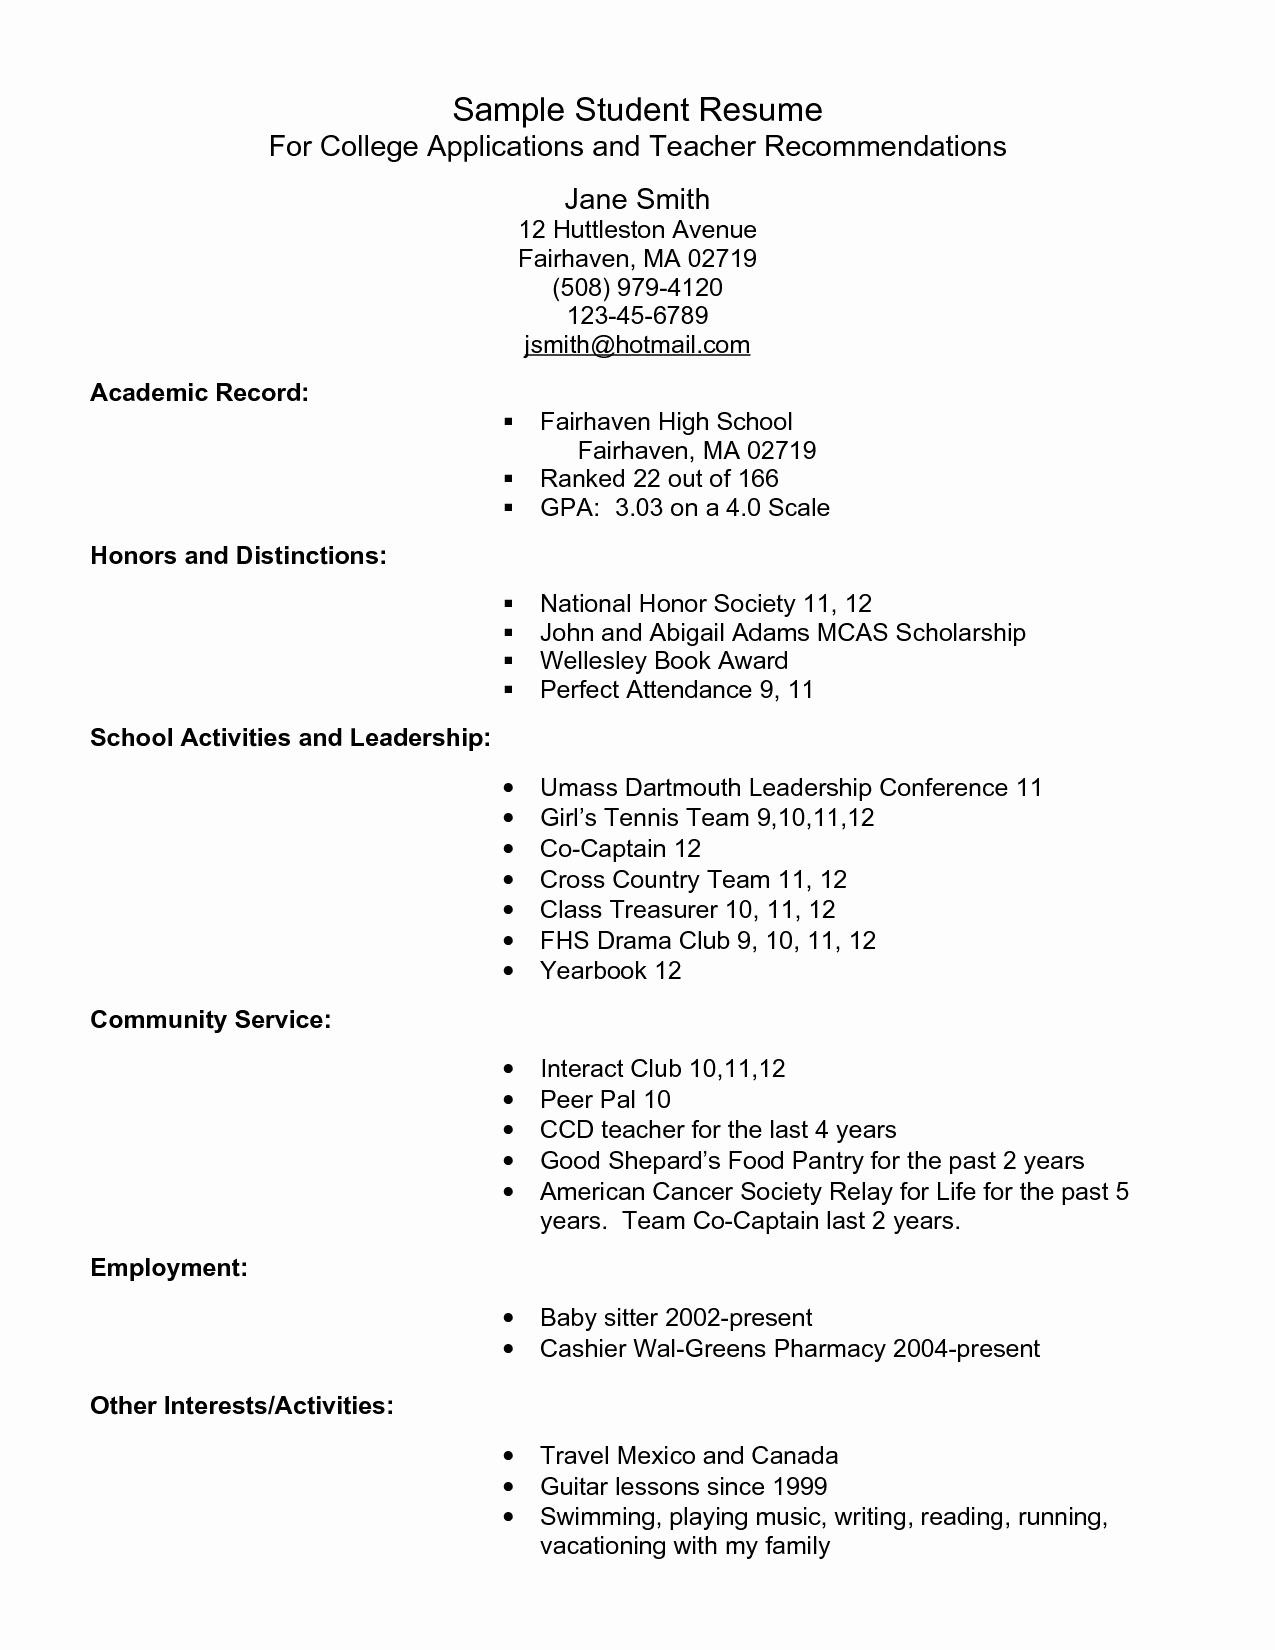 College Application Resume Examples Beautiful Example Resume for High School Students for College